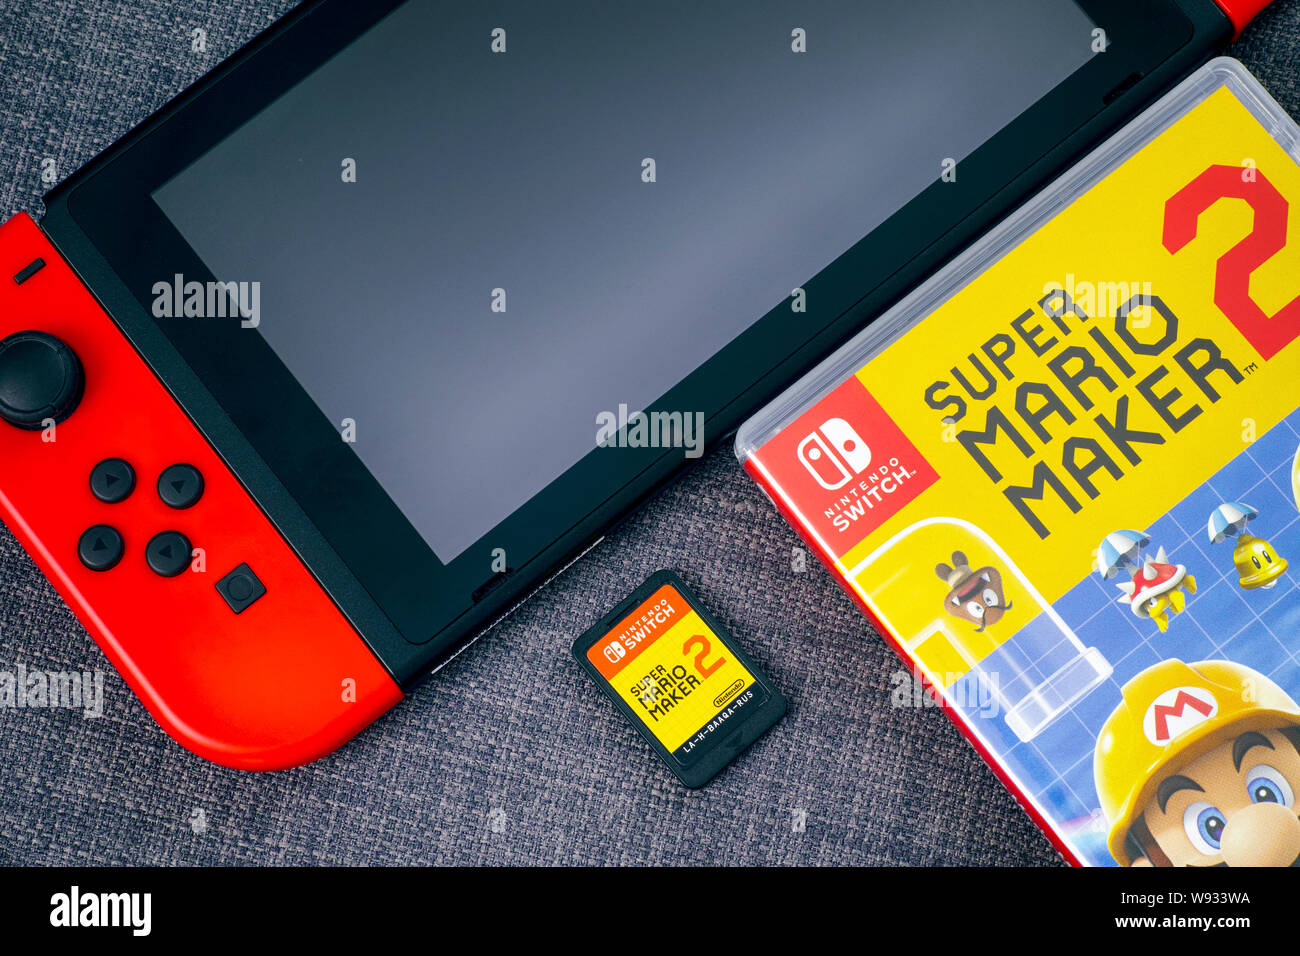 Game Console Stock Photos & Game Console Stock Images - Alamy